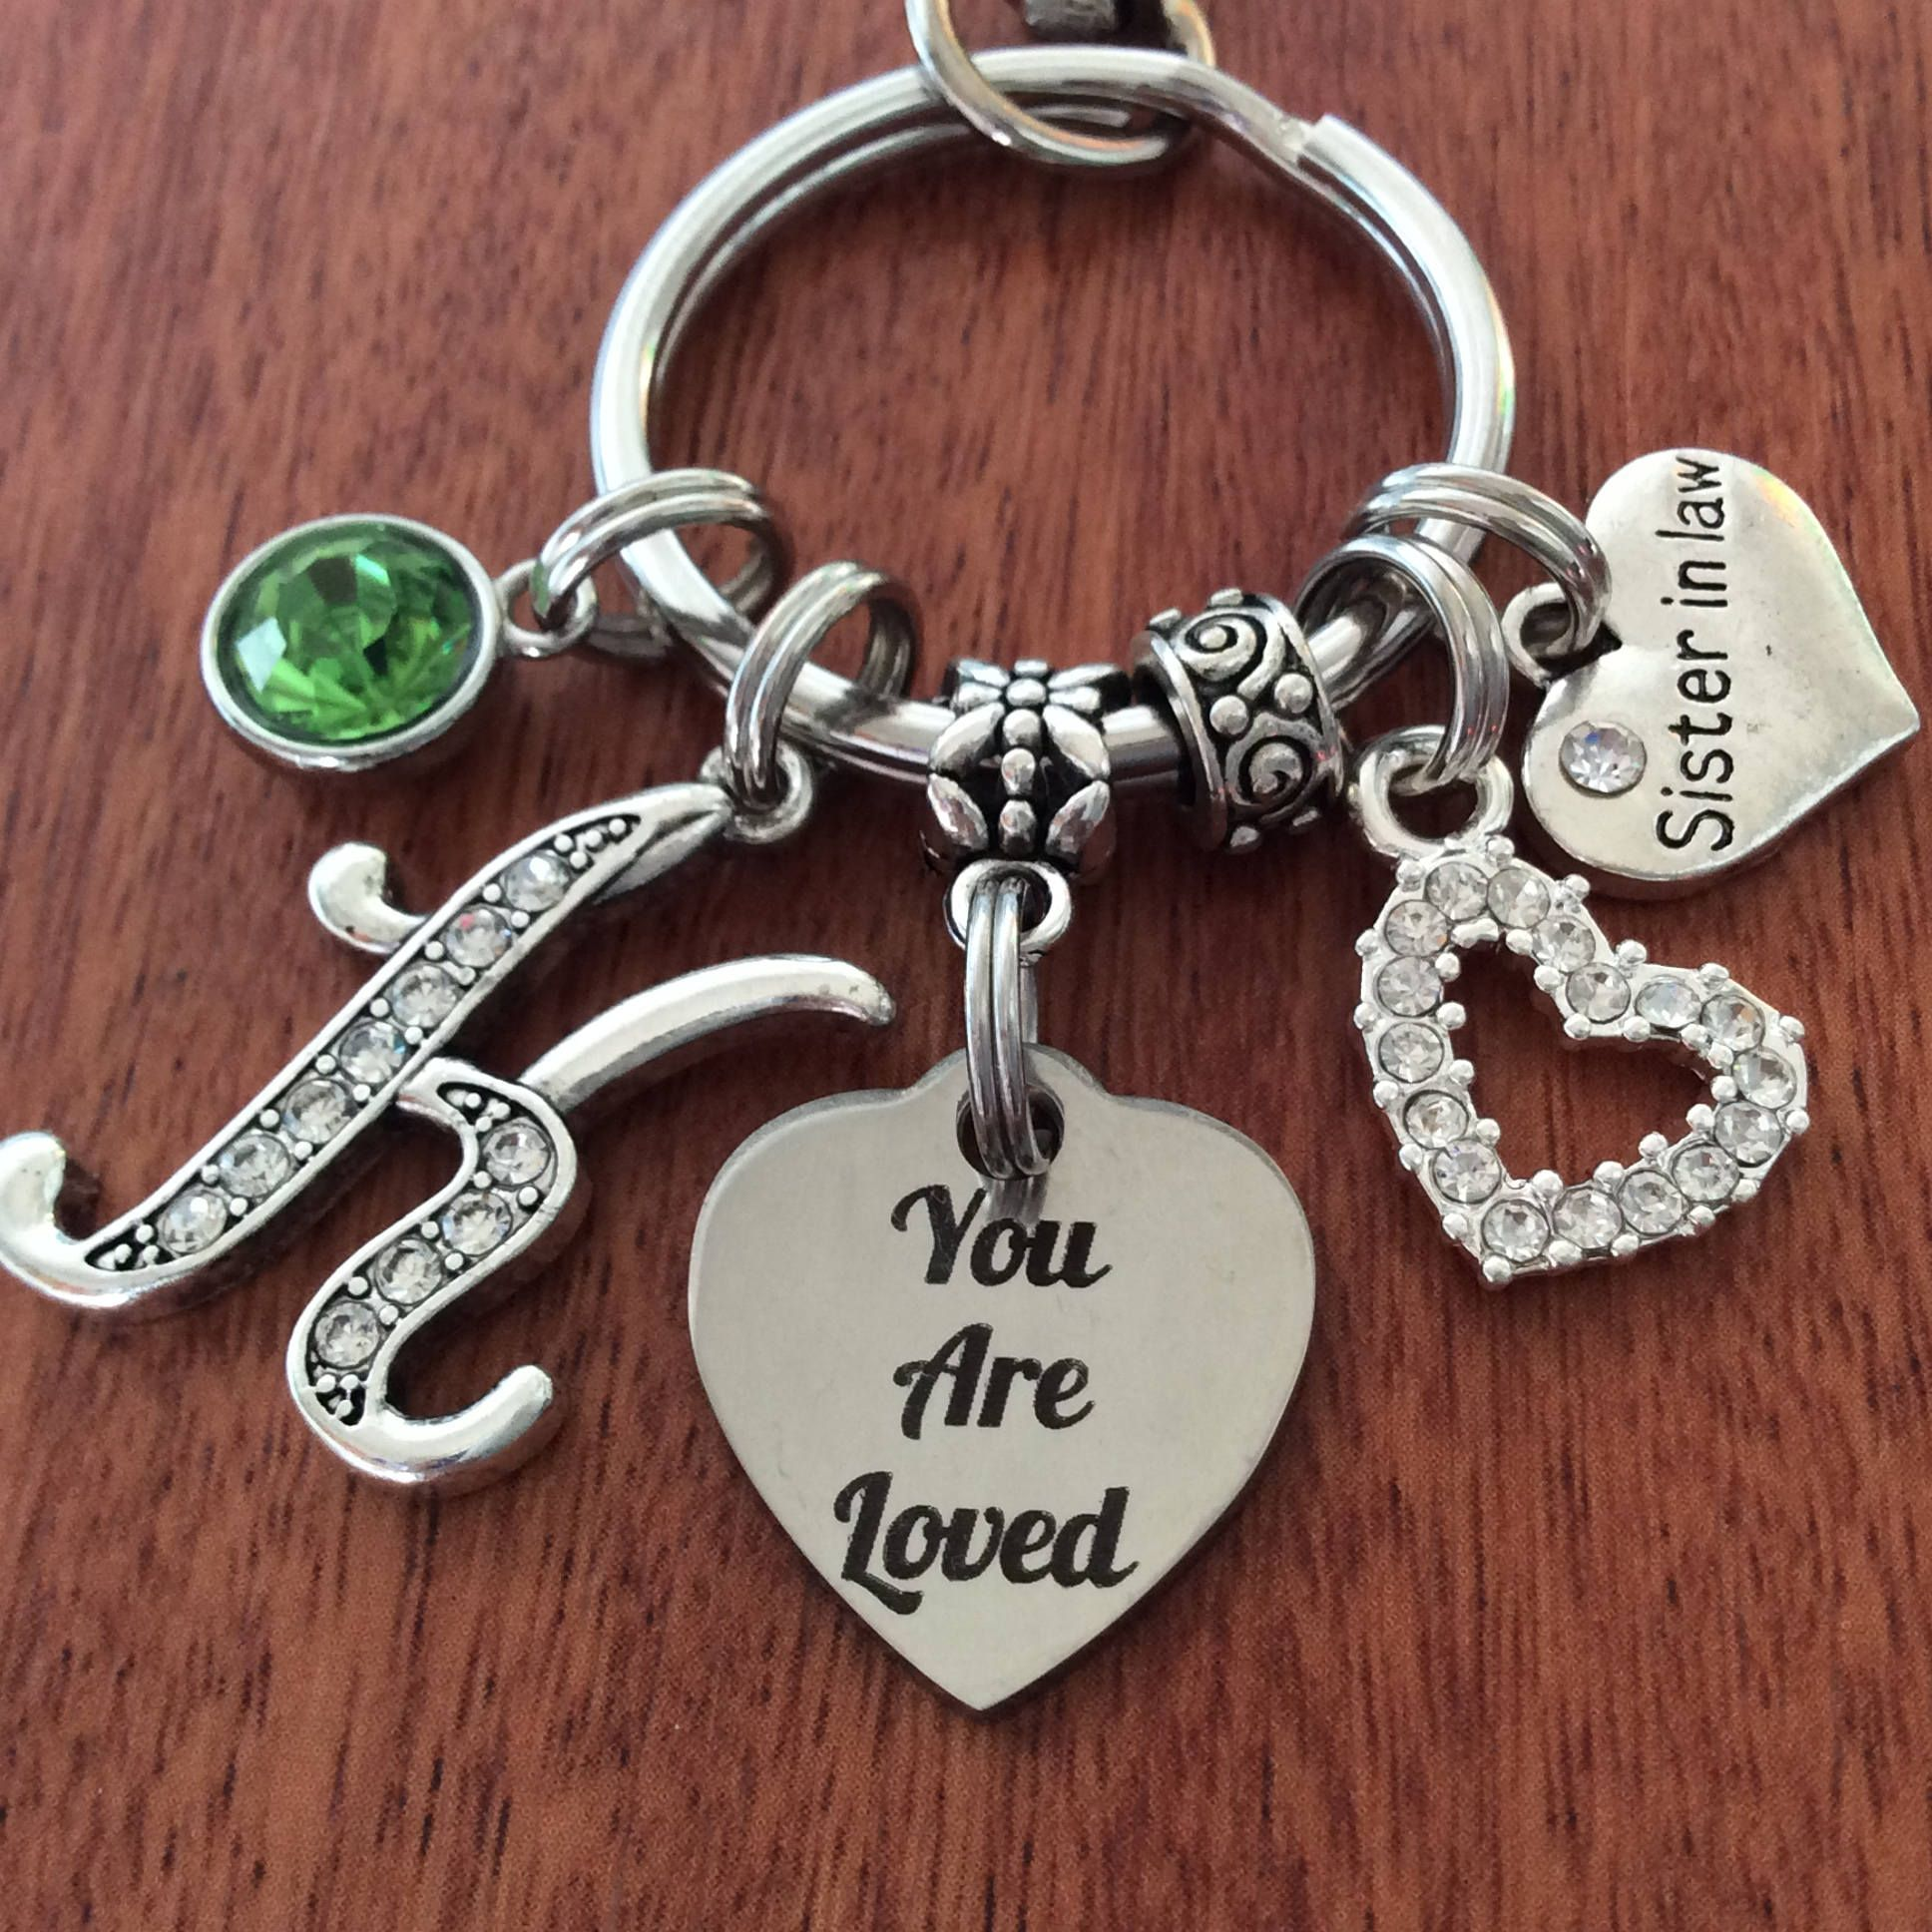 SISTER IN LAW Gift Sister In Law Birthday Keychain Gifts For You Are Loved Personalized By